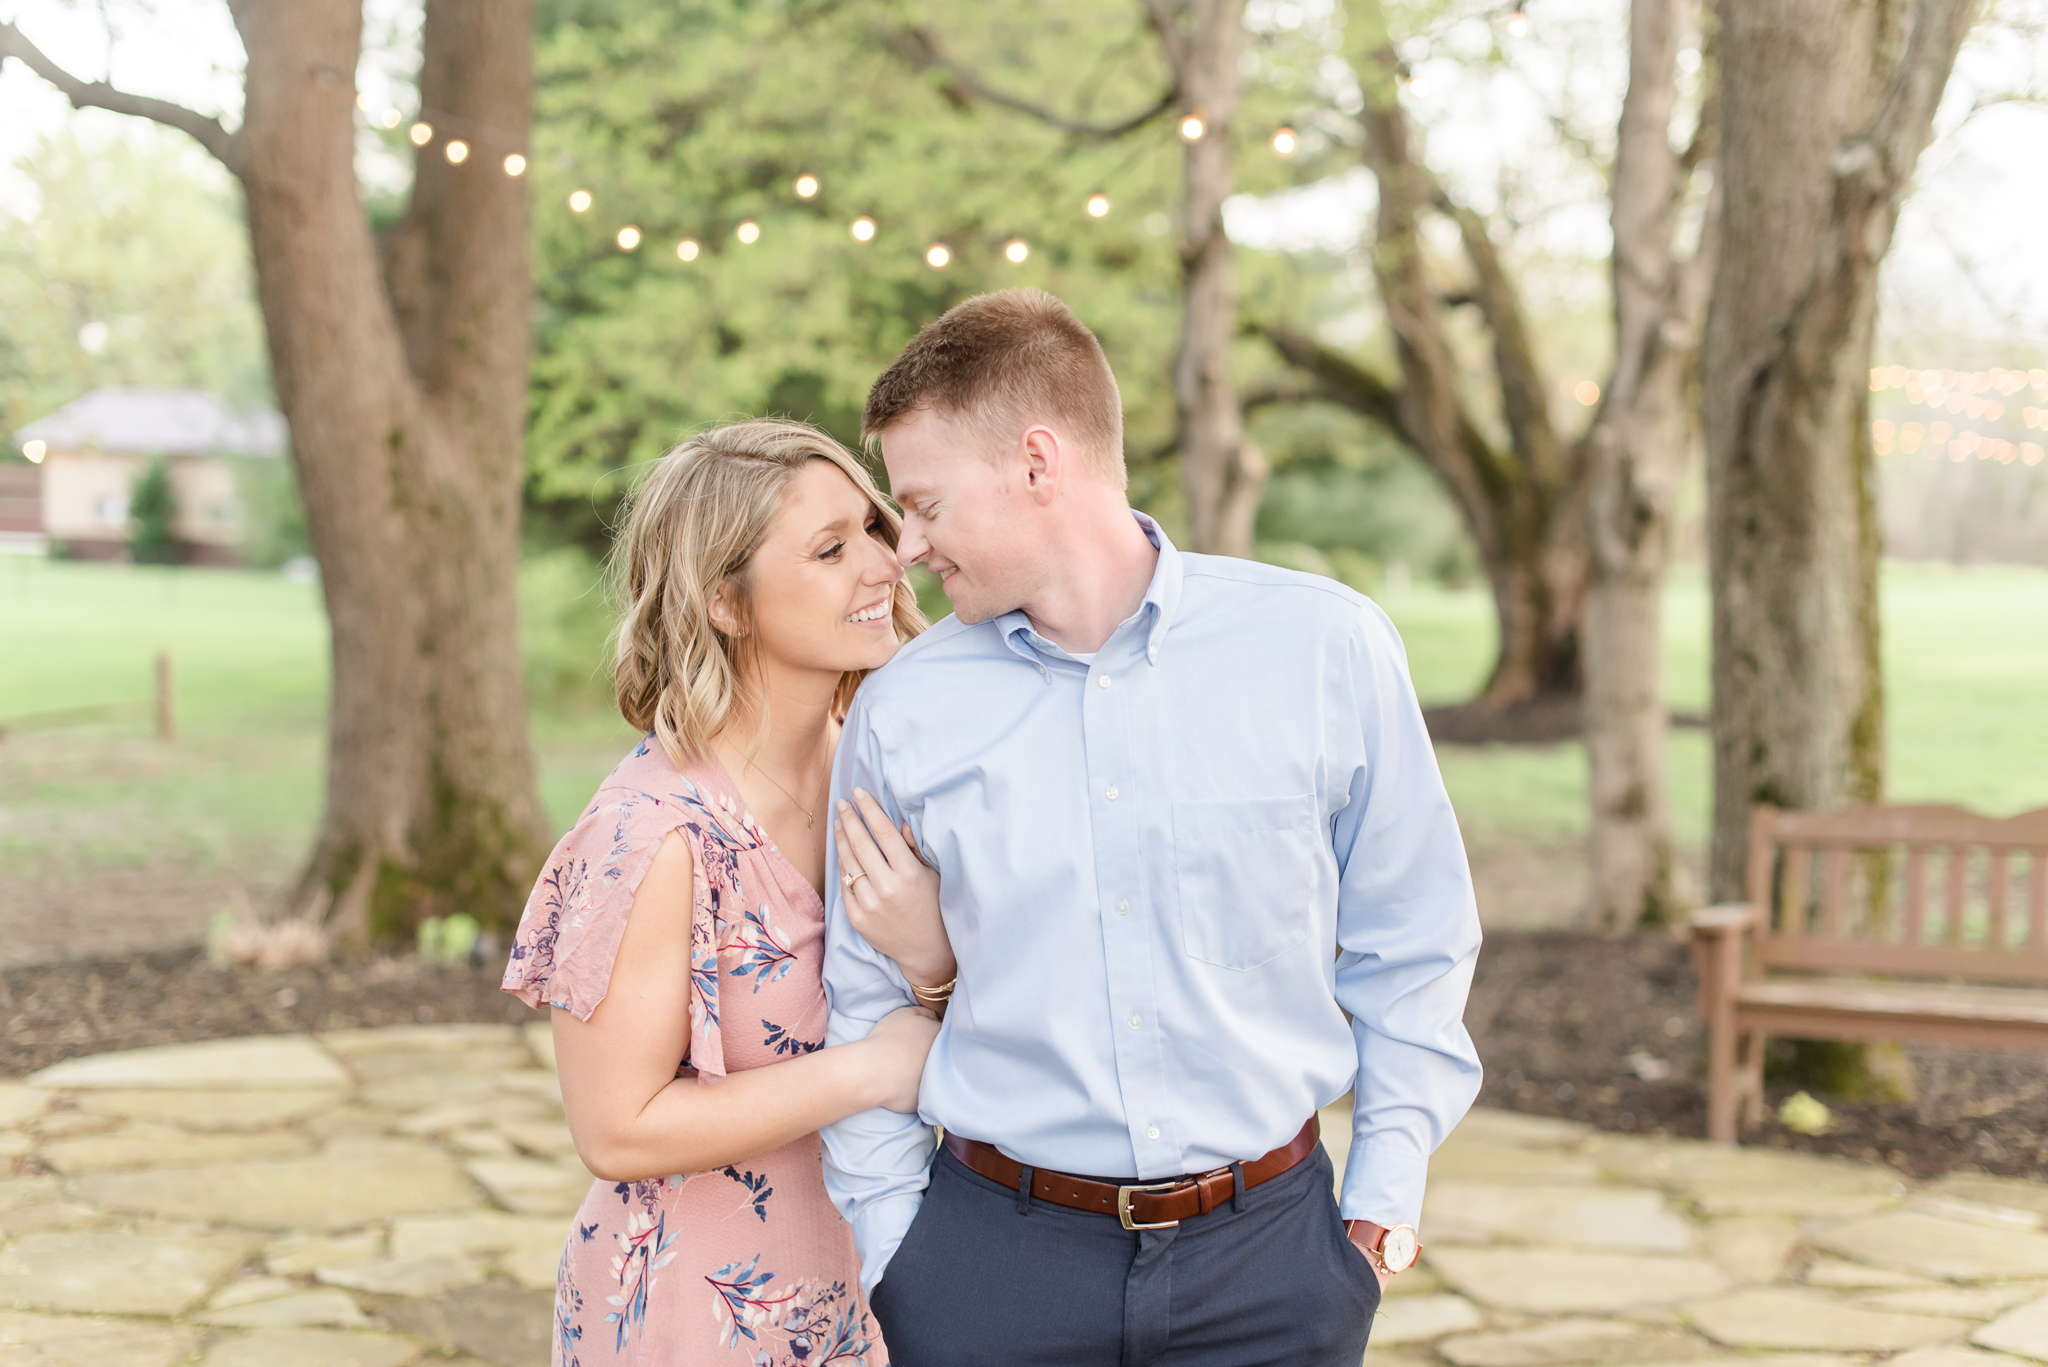 Richie Woods Nature Preserve and Mustard Seed Gardens Engagement Session Wedding Photos-44.jpg